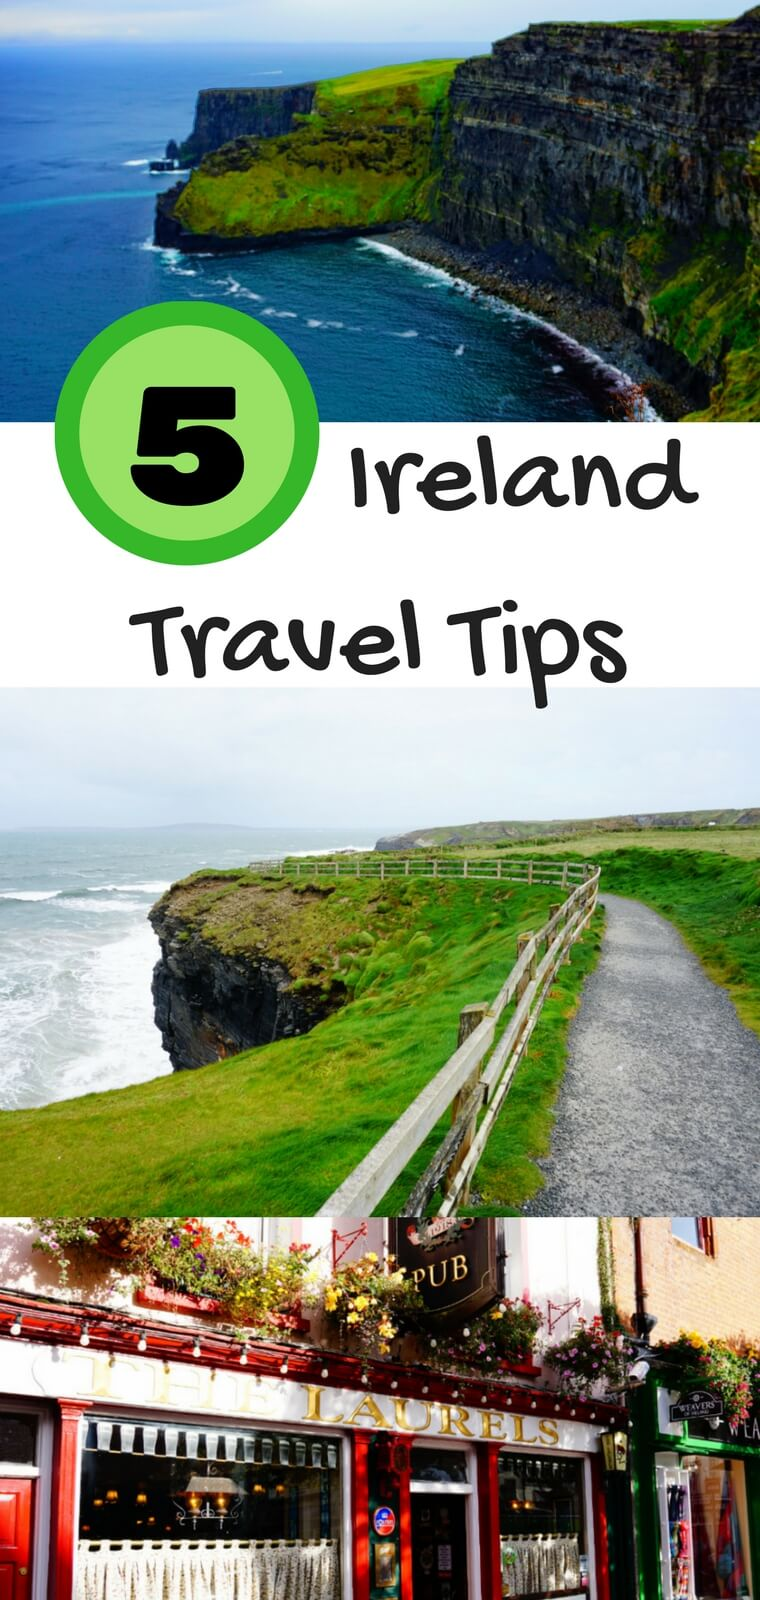 Ireland is an incredible country. If you are looking to travel to Ireland, don't miss these 5 Ireland travel tips that will help you see and do the best things in Ireland. #Ireland